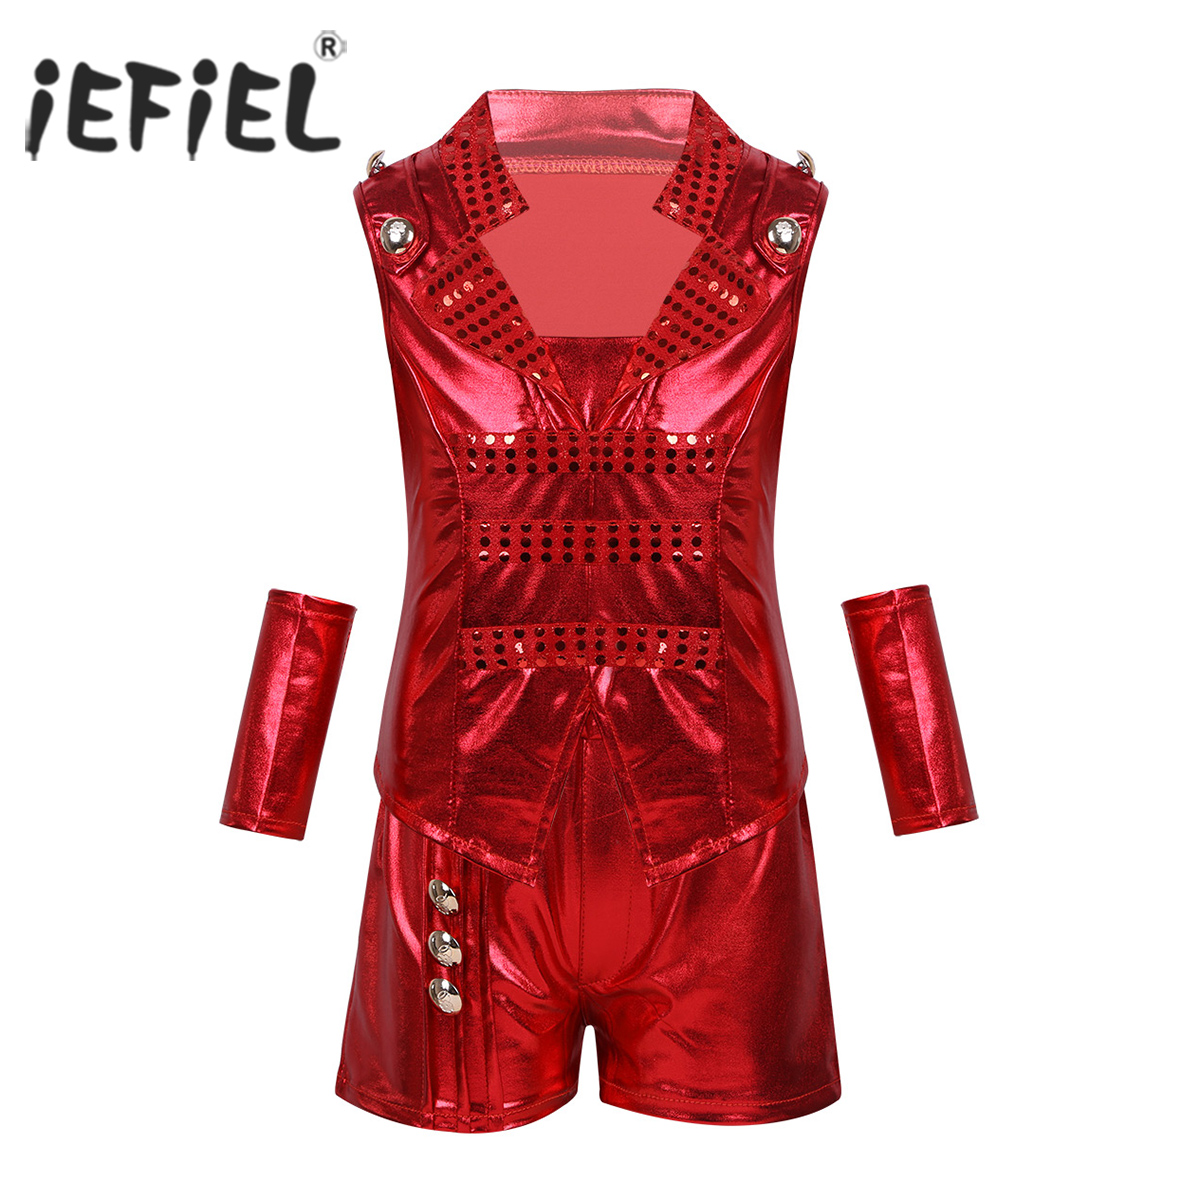 iEFiEL Unisex Kids Boys Girls Jazz Dance Costume Outfit Clothing Shiny Metallic Top Vest with Shorts Wrist Sleeves Dancewear